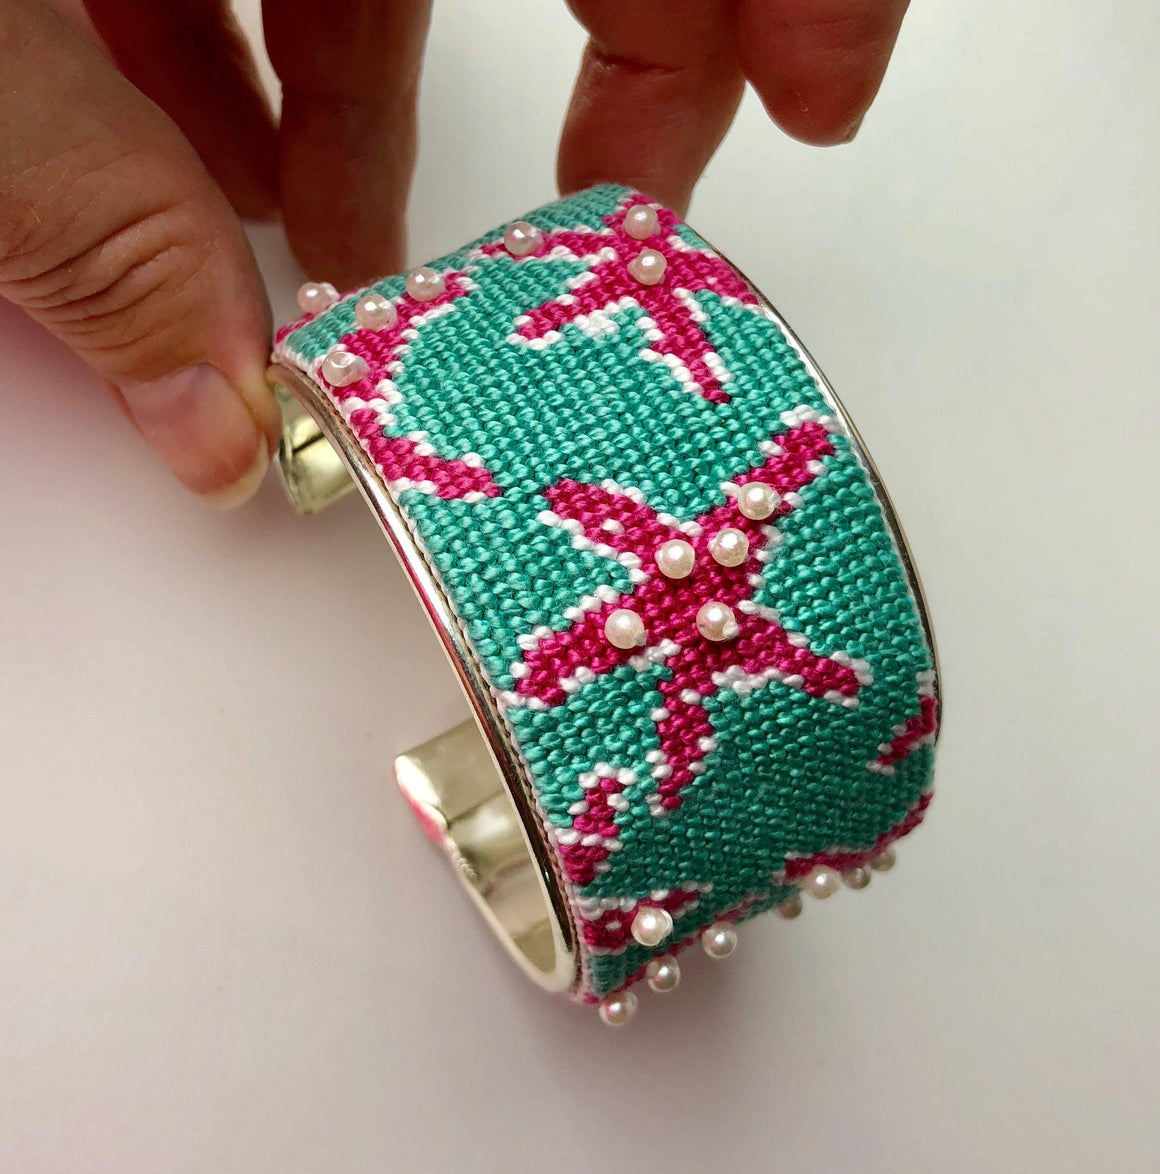 Roses Needlepoint Bracelet Cuff Kit - Needlepoint by Laura, LLC